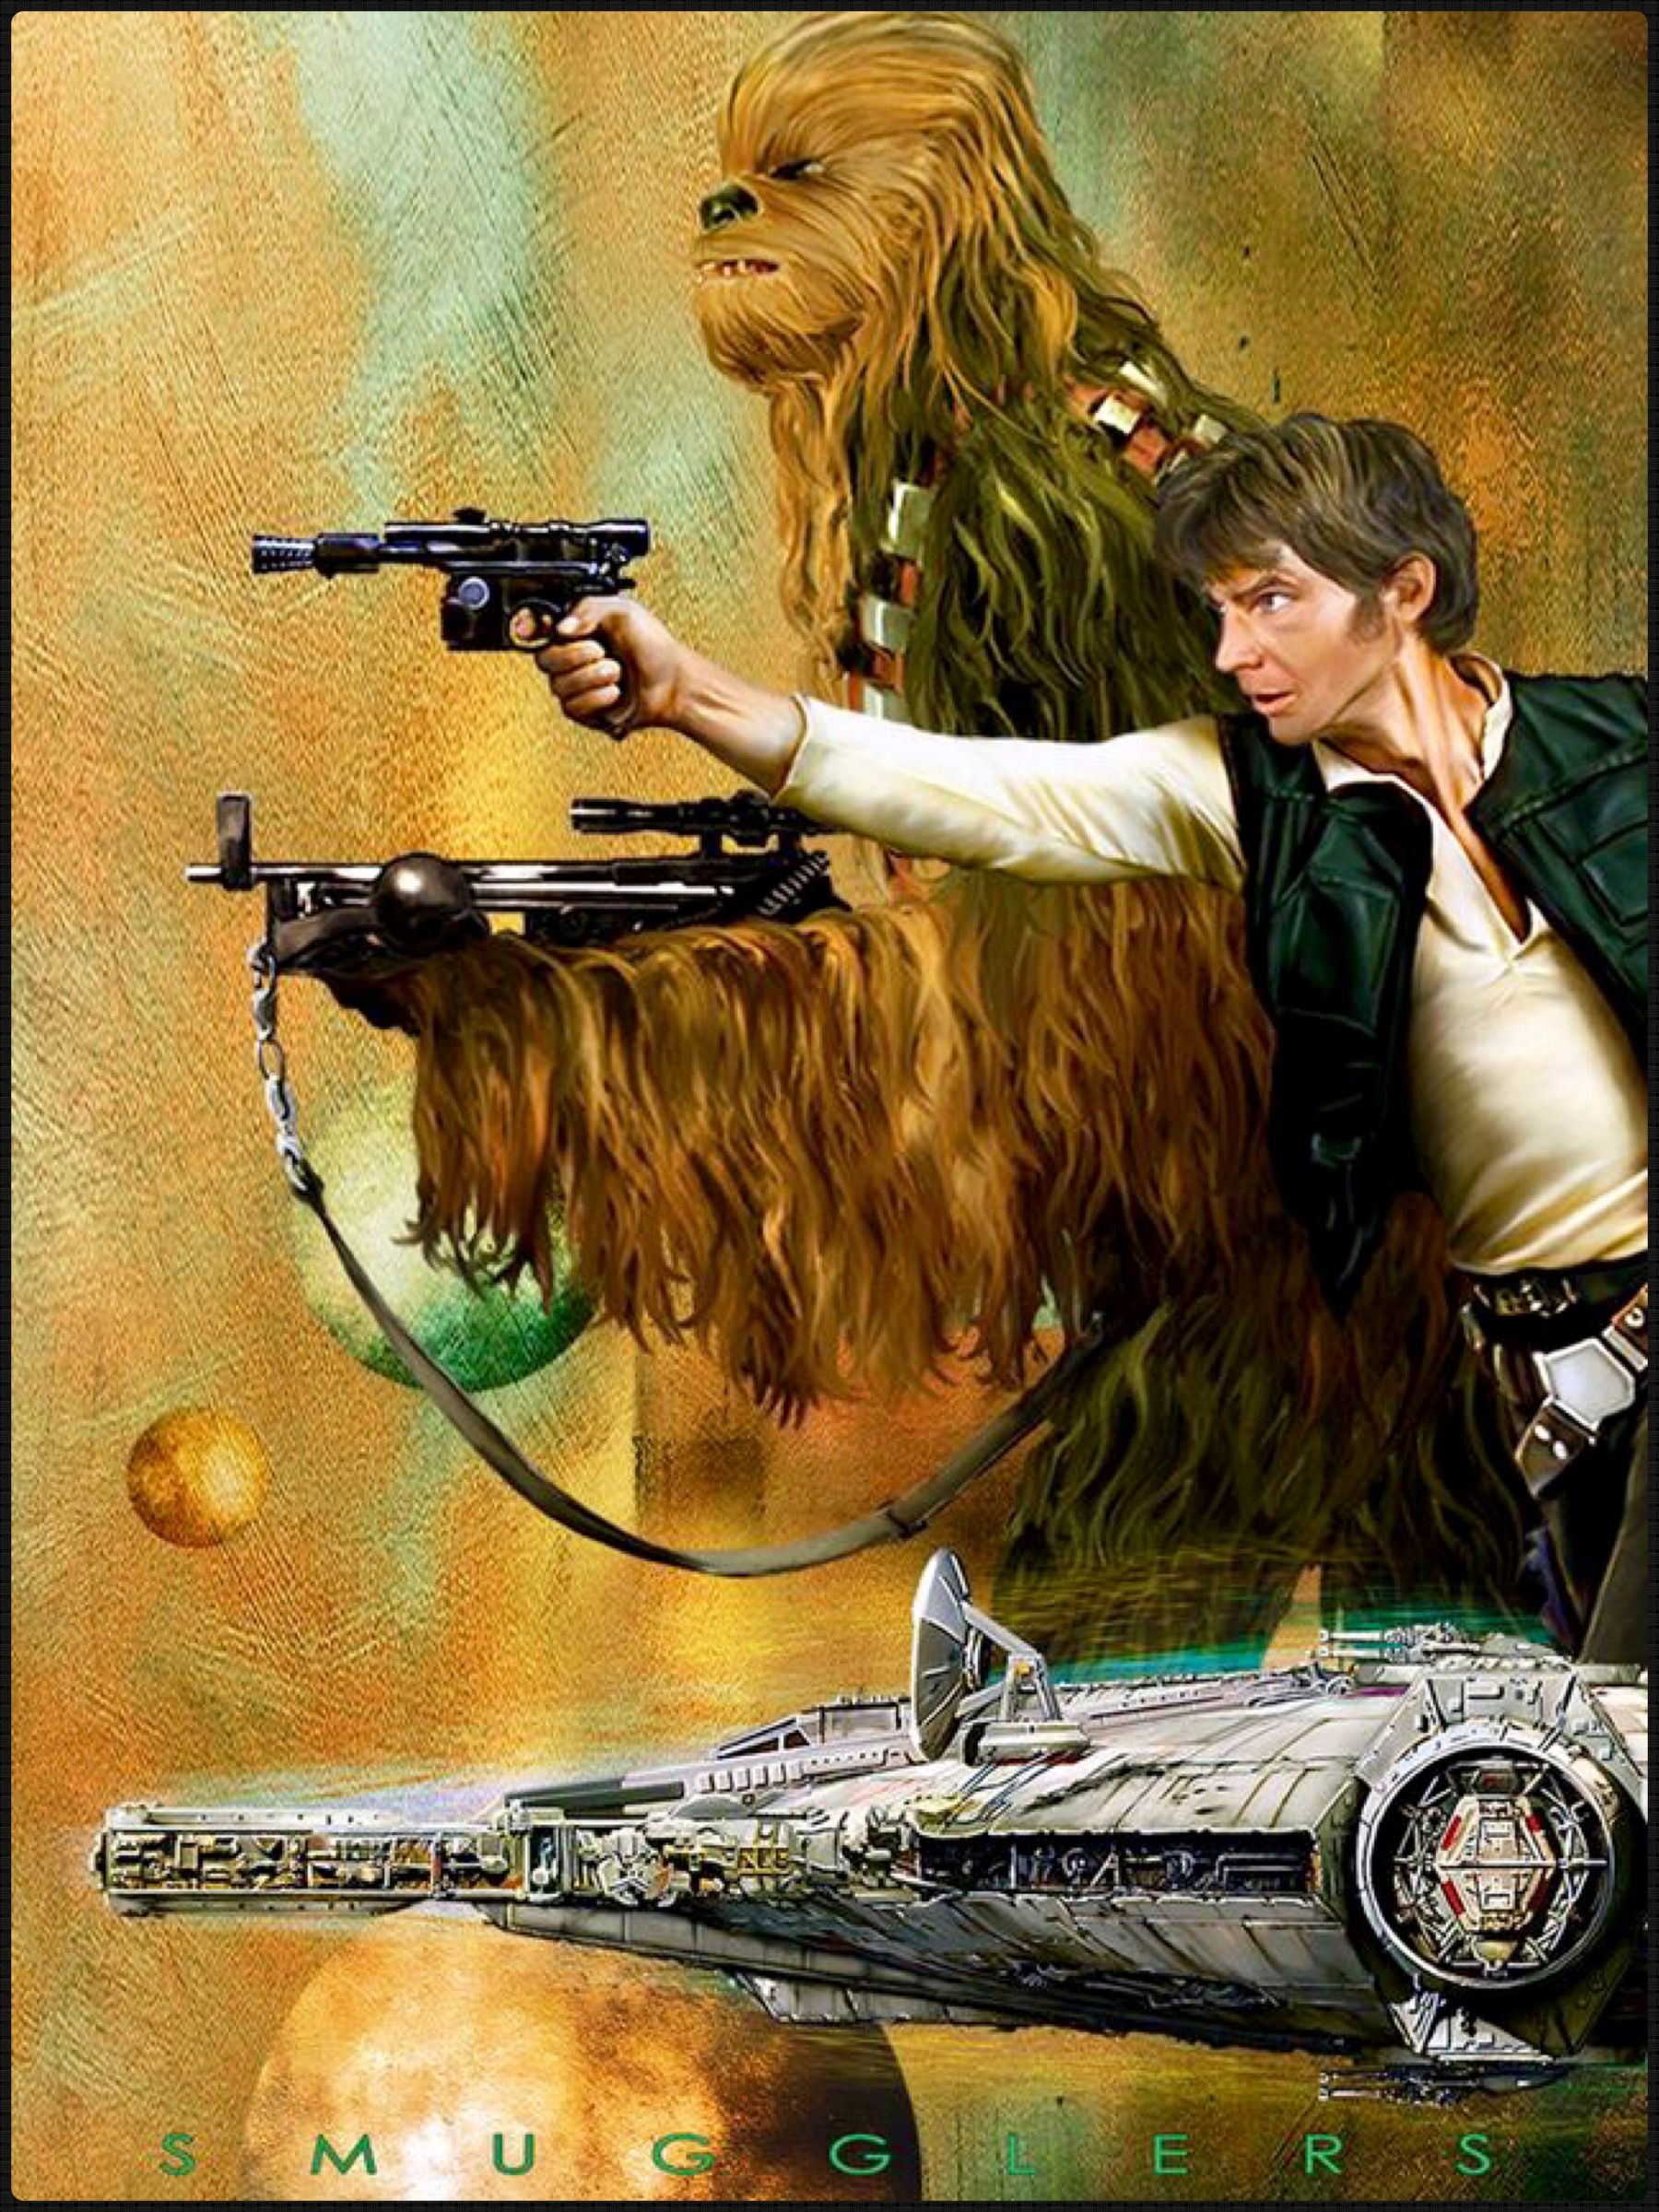 "Han Solo And Chewbacca Star Wars ¹ターウォーズアート Ƙ ç""» Ýスター «イロレン ìイ"